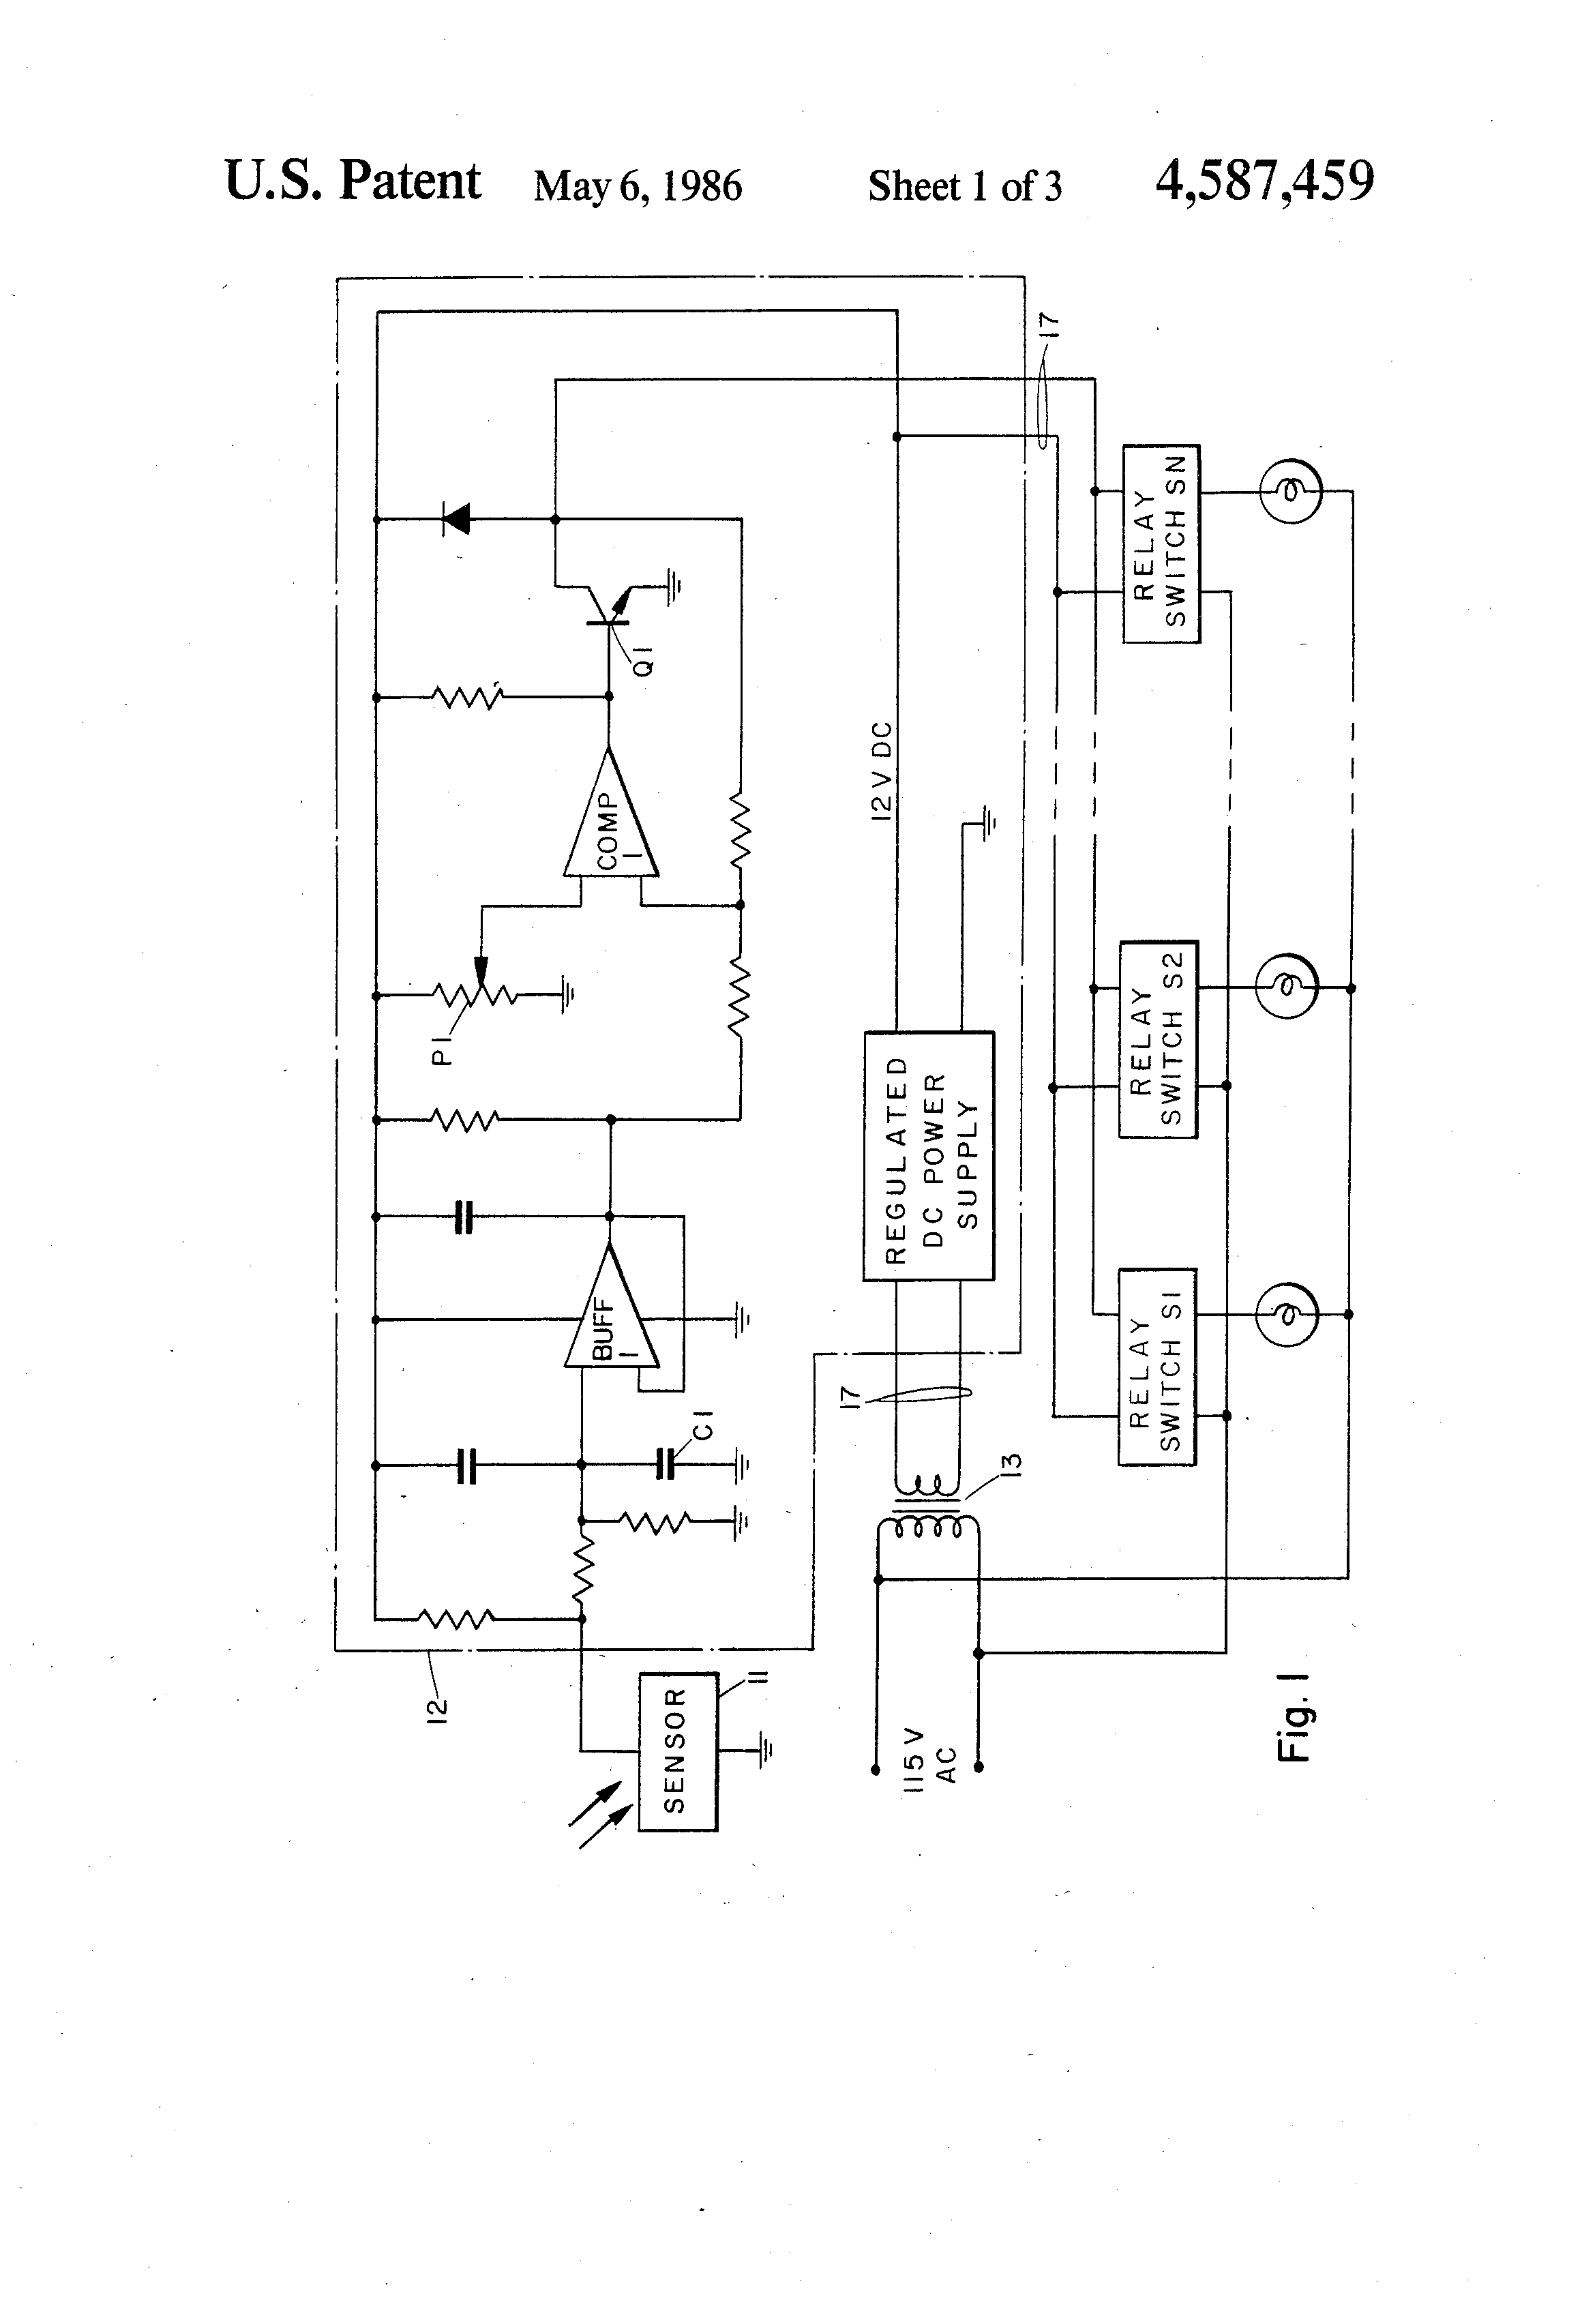 Area Lighting Research Photocell Wiring Diagram 47 Sensor Us4587459 1 Patent Light Sensing Fixture Control System